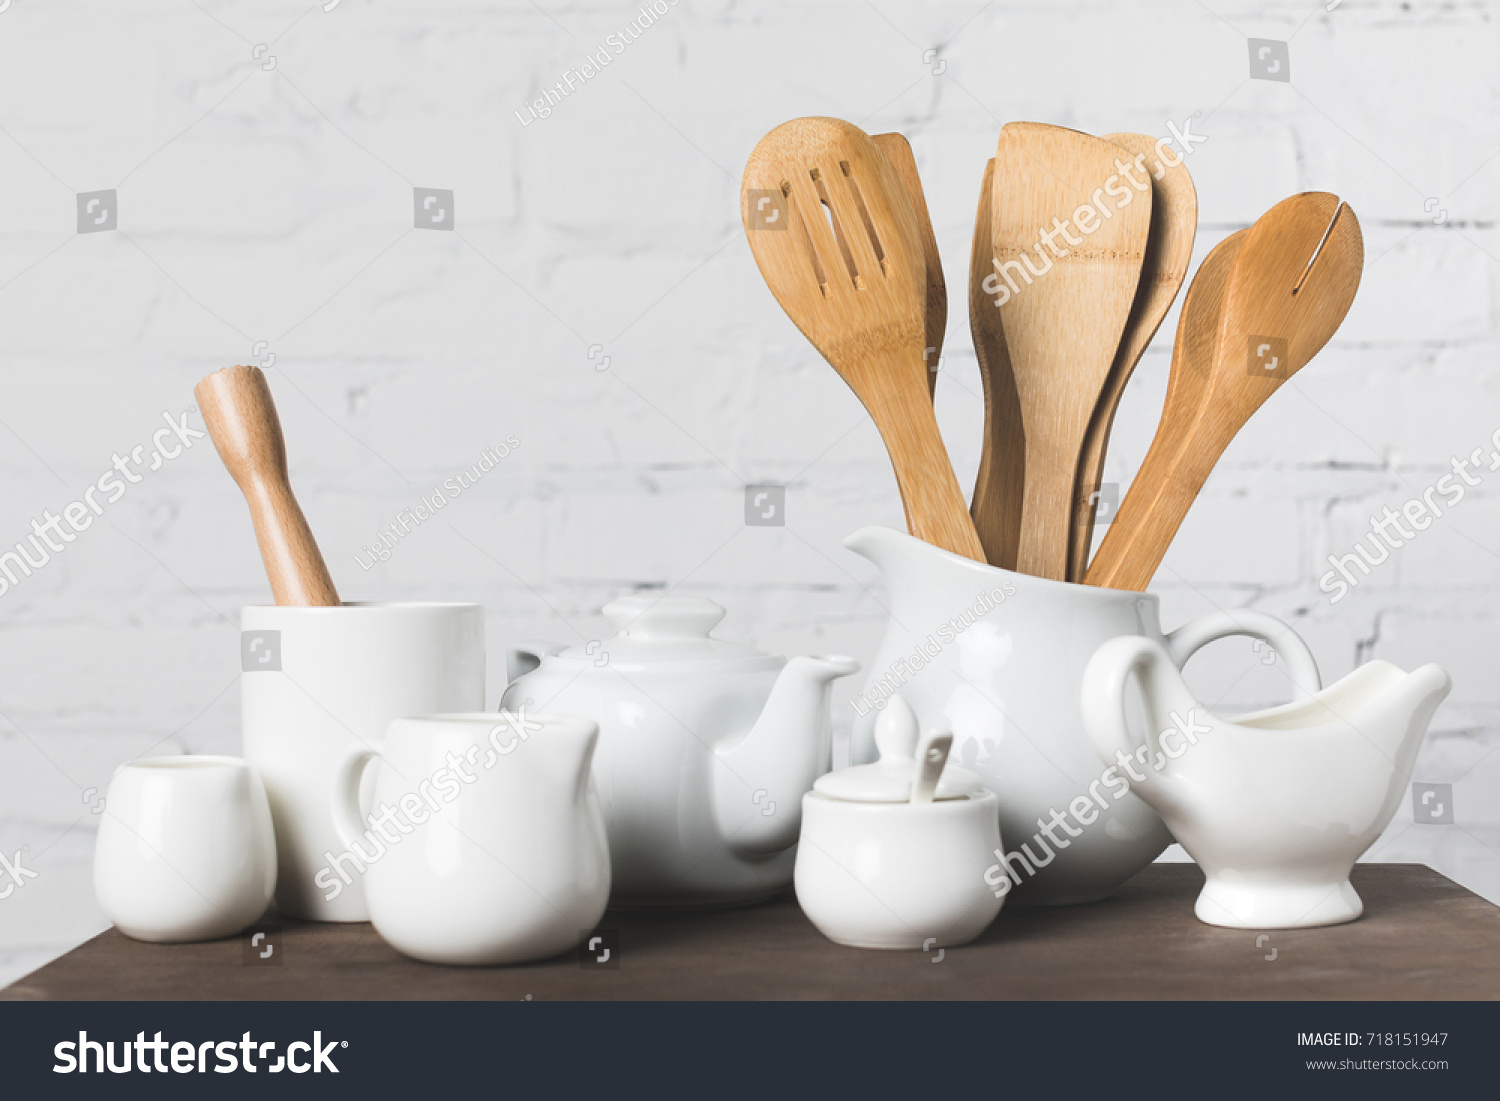 Wooden Cooking Utensils Ceramic Kitchenware On Stock Photo (Royalty ...